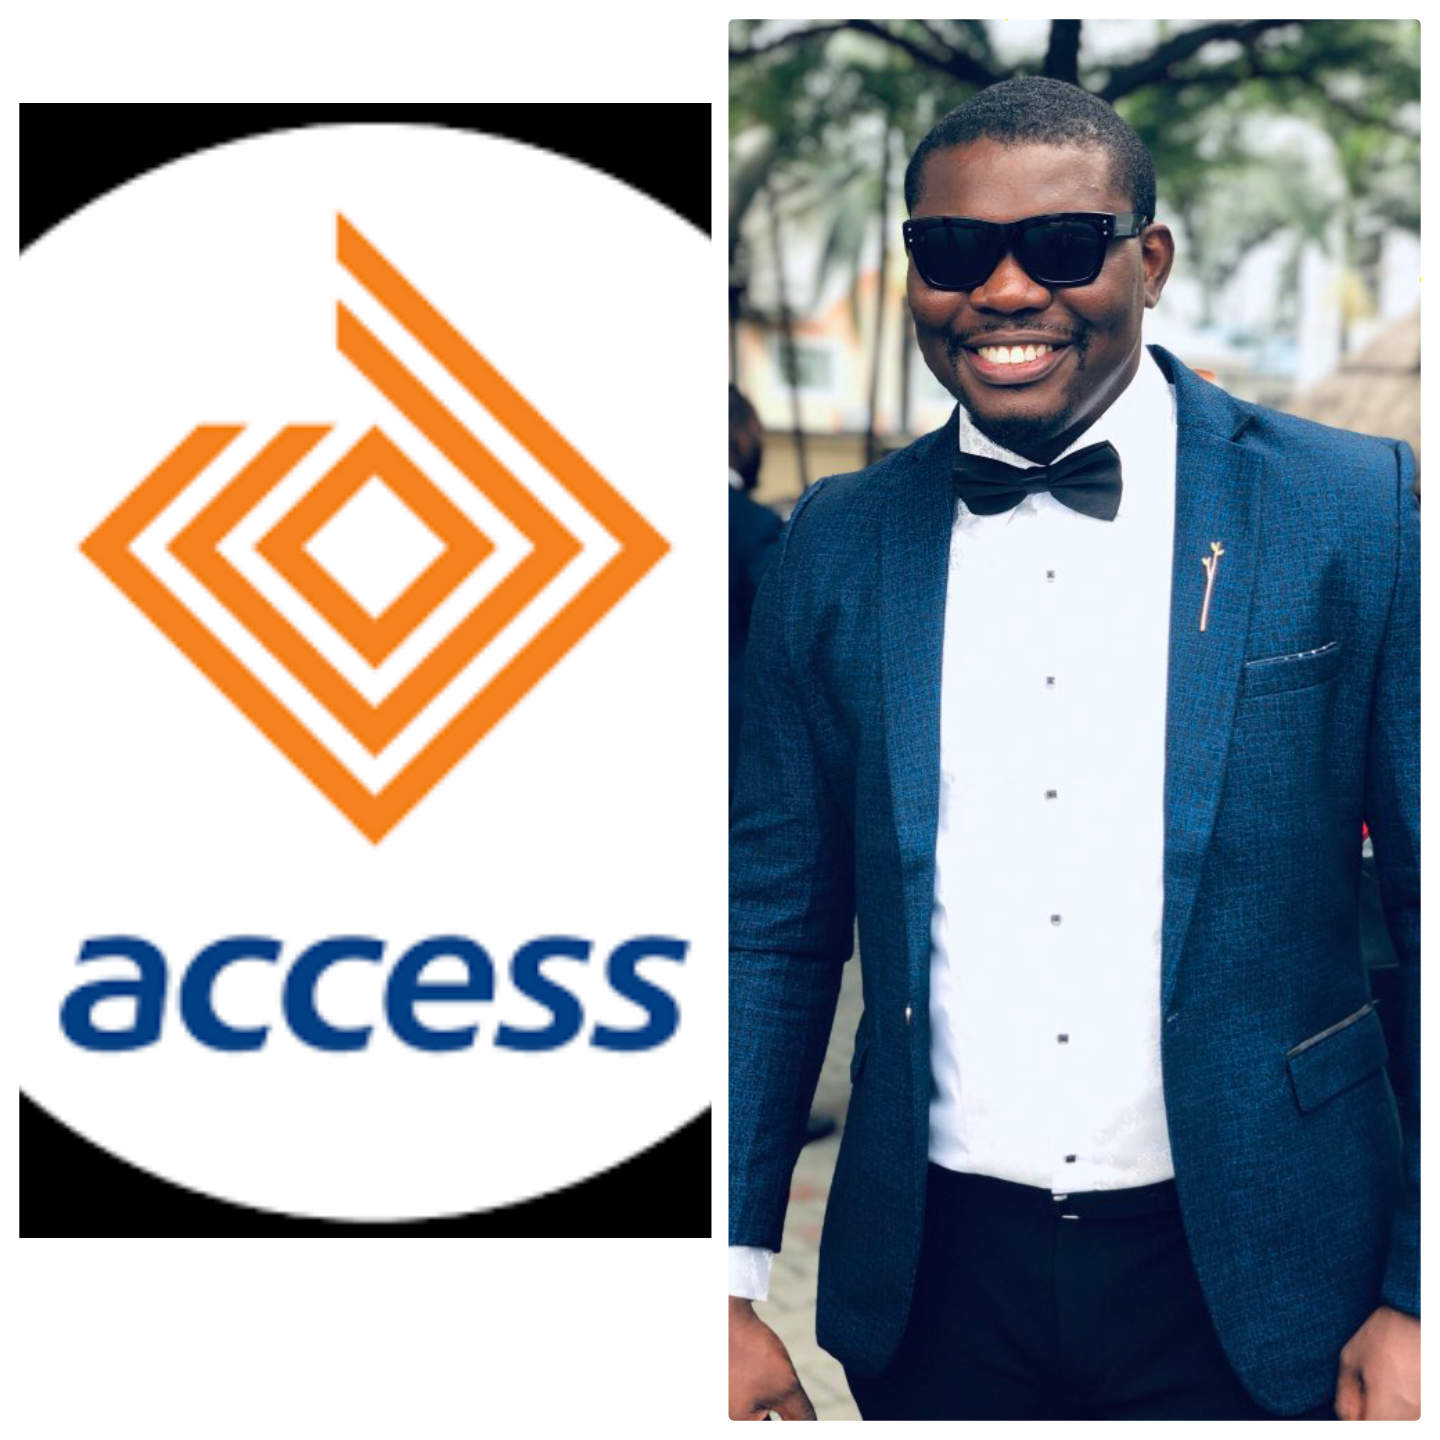 Access Bank lands birthday celebrant to Egypt